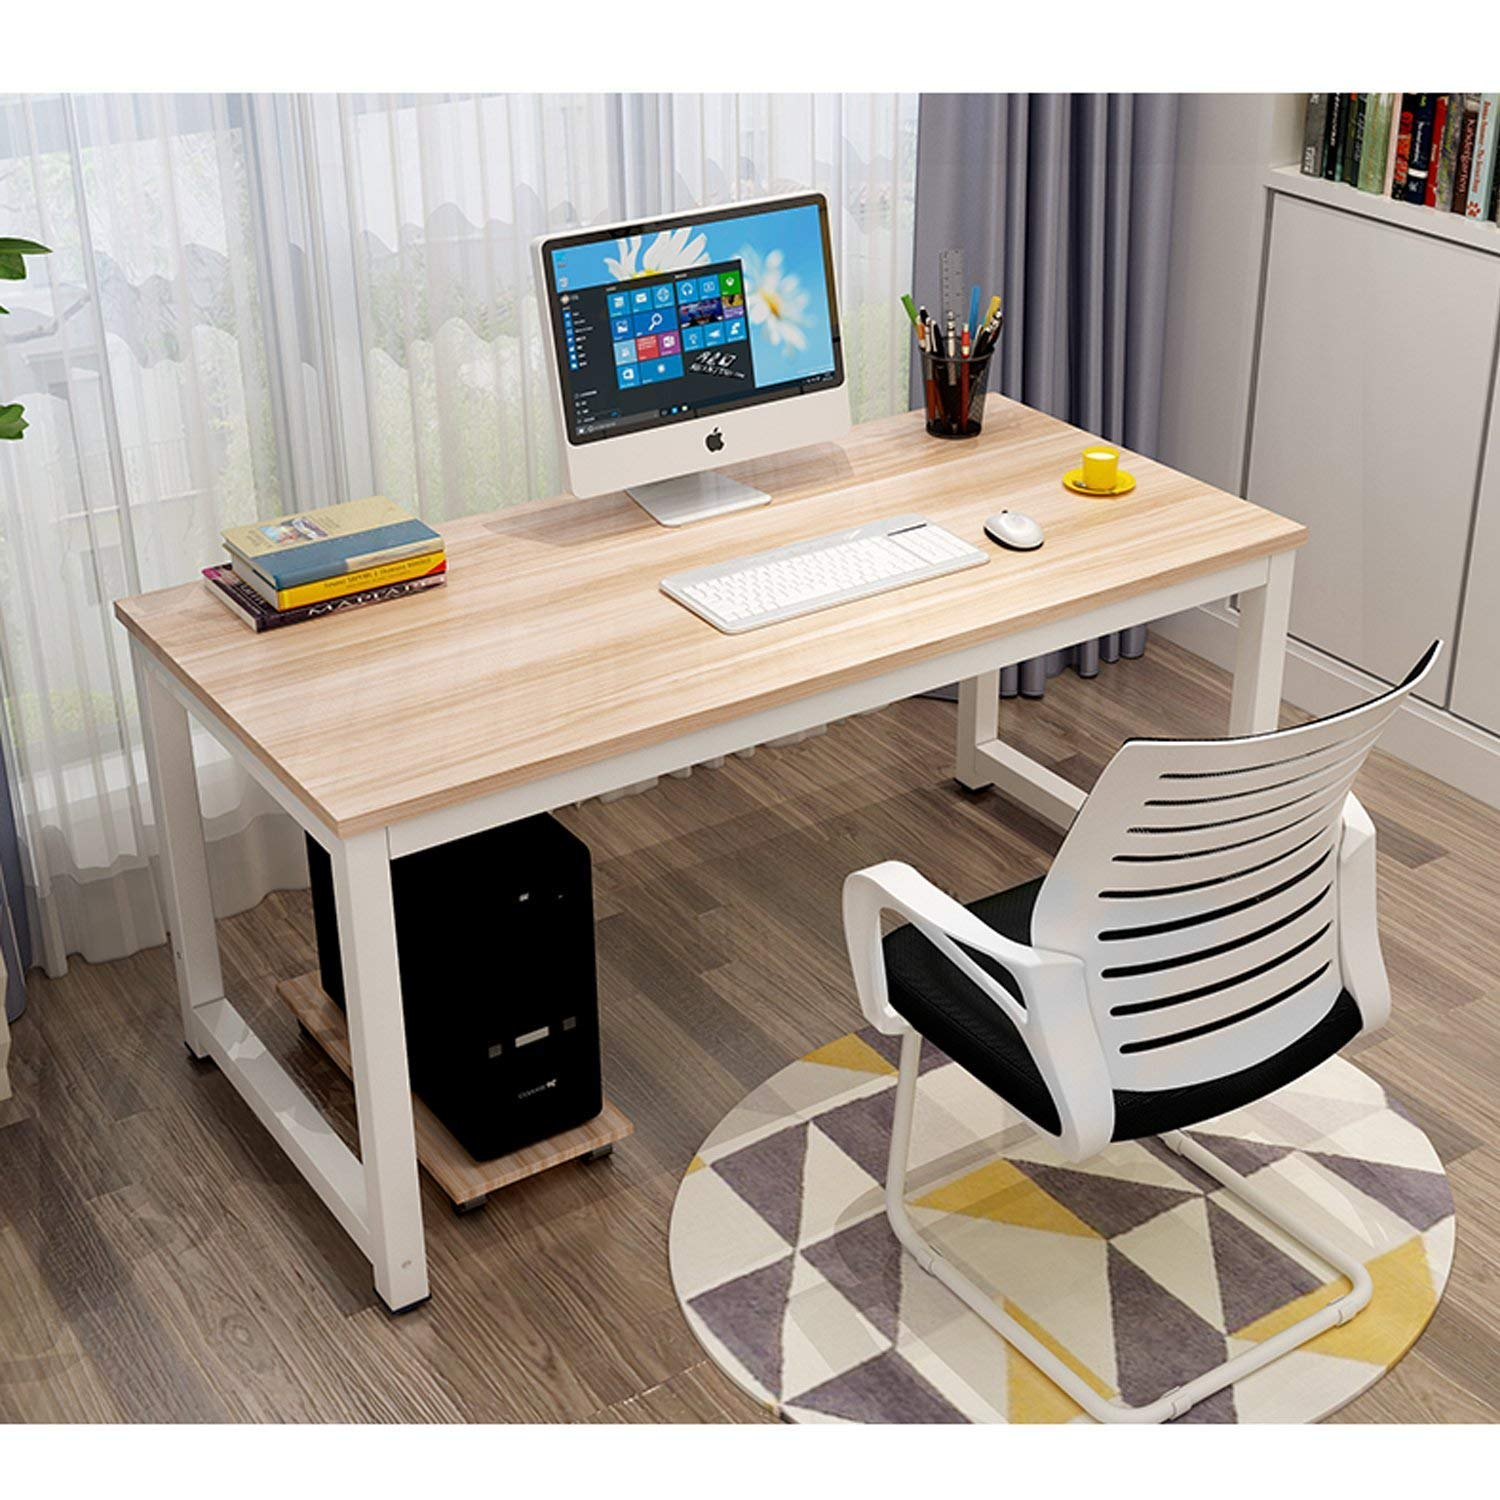 "Modern Simple Style Computer Desk PC Laptop 47"" Office Desk Computer Table Study Writing Desk for Home Office (Beige & White Frame)"